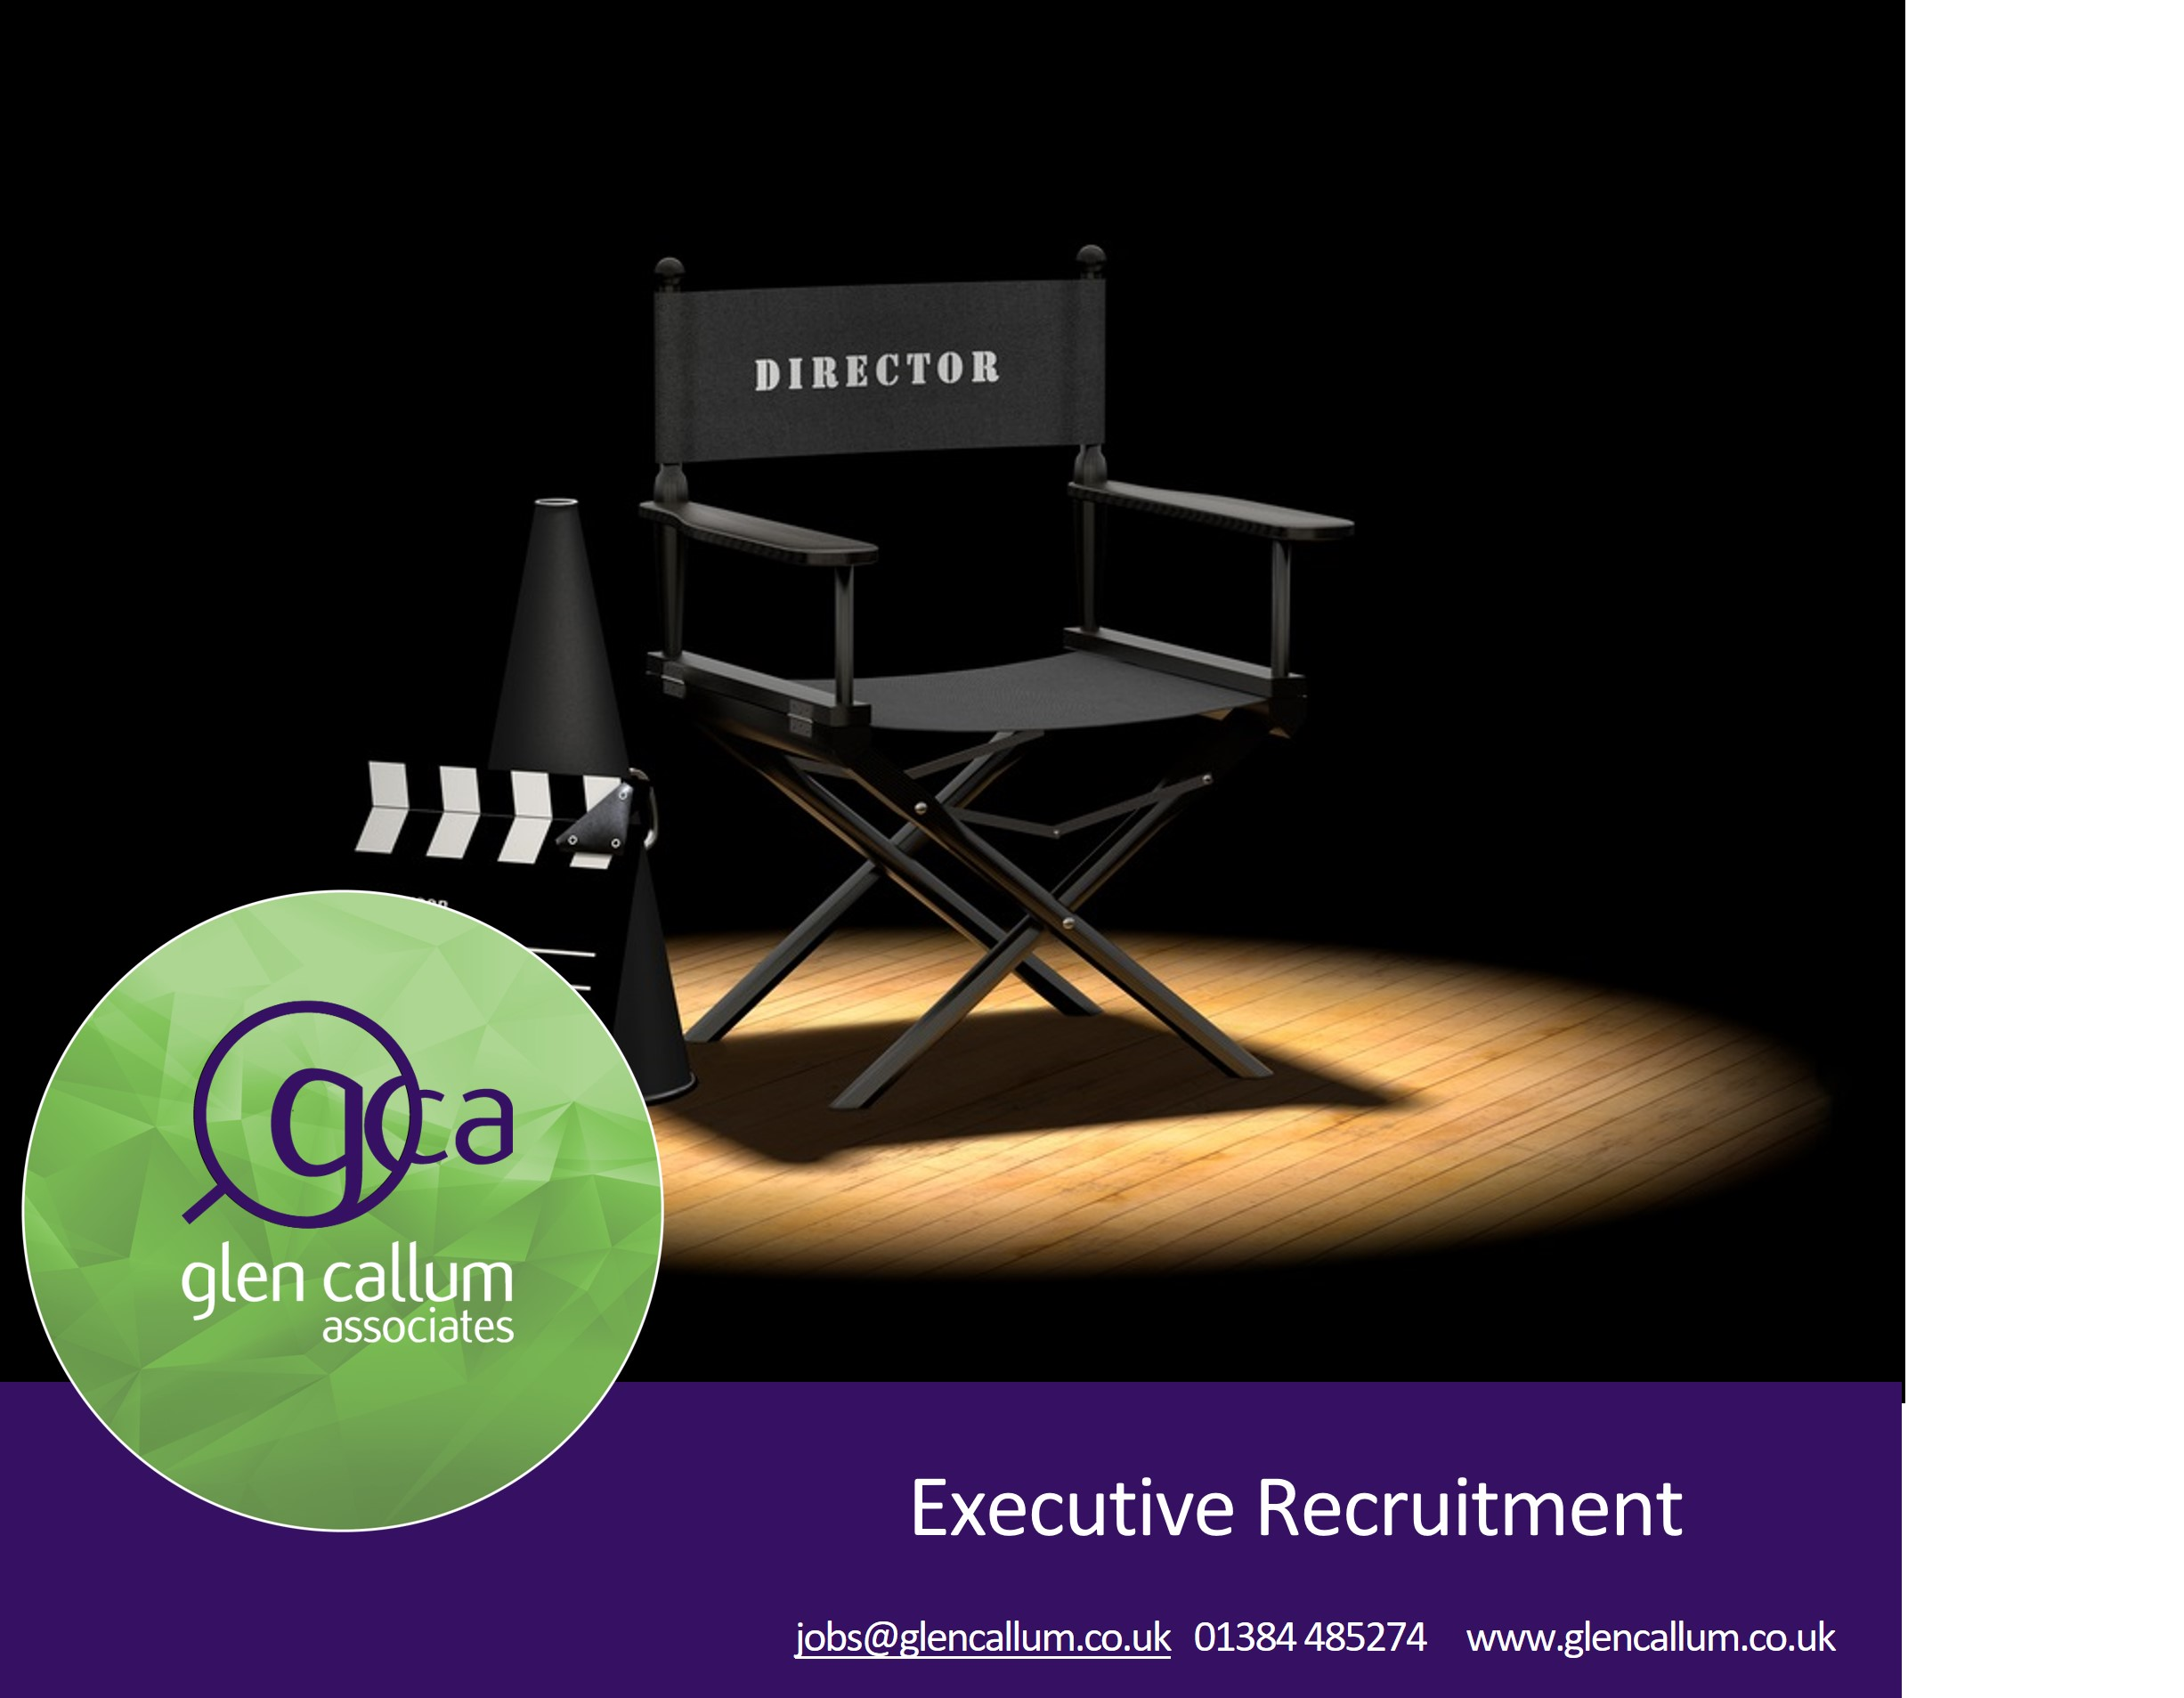 Executive Search, Headhunt that Director